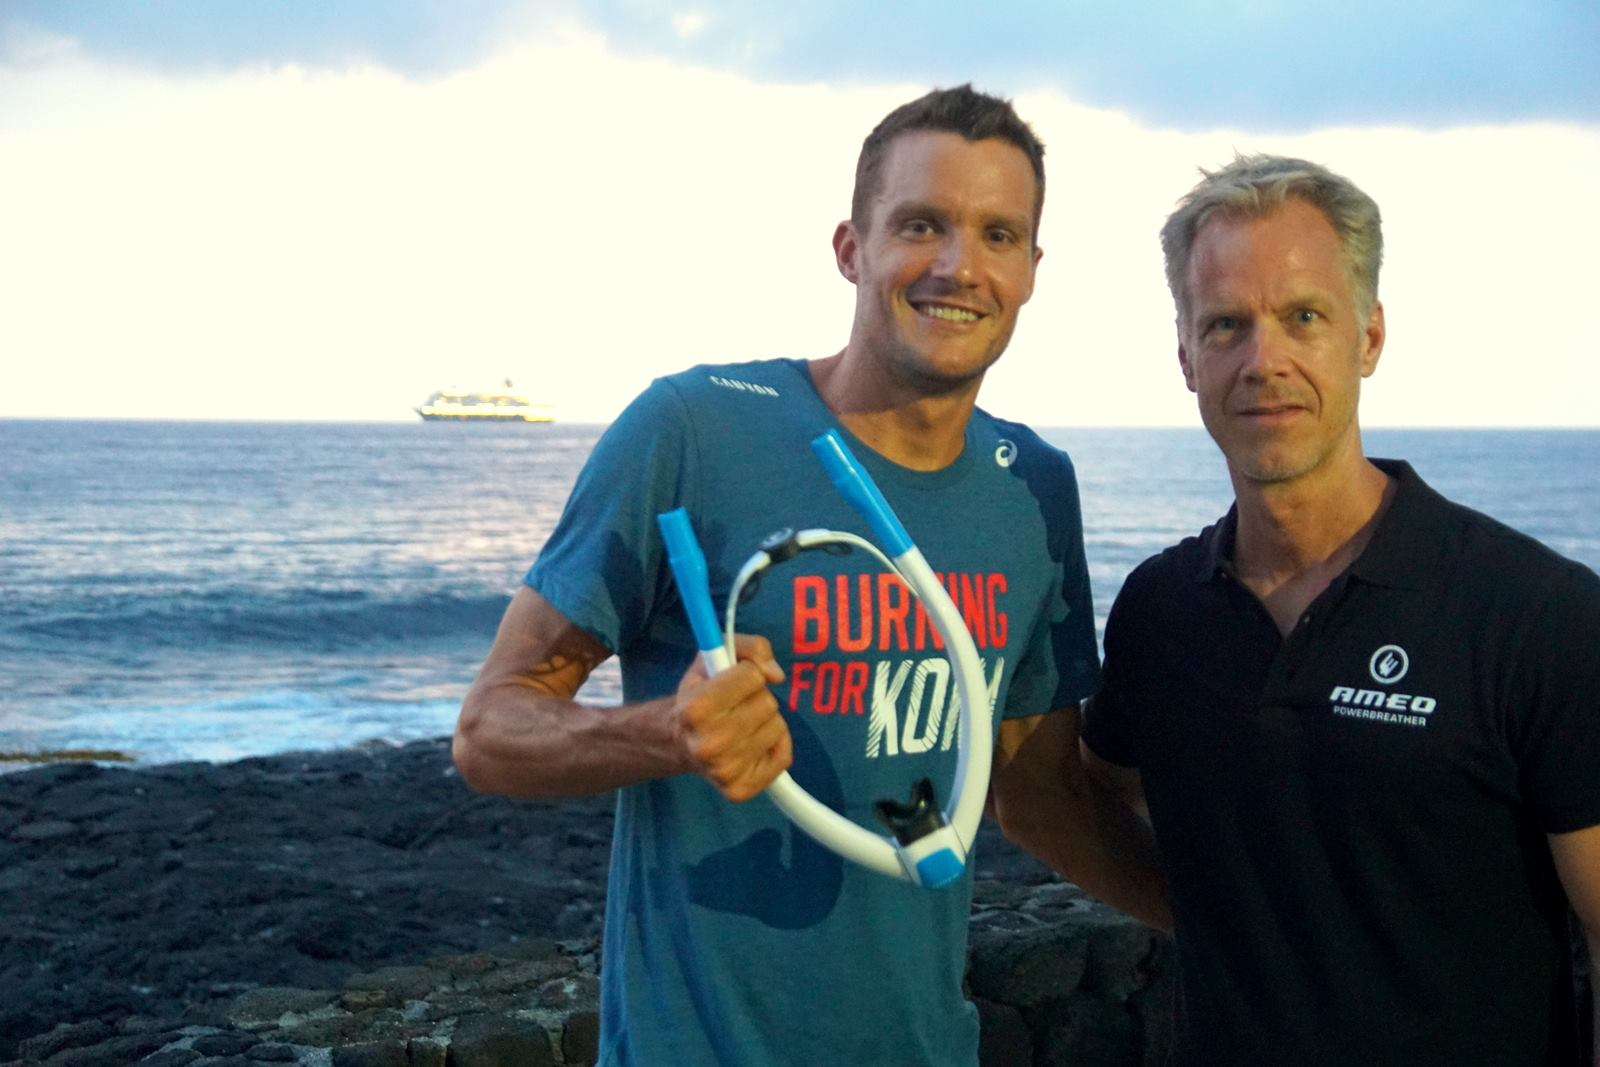 POWERBEATHER at Ironman World Championships Kona 2016